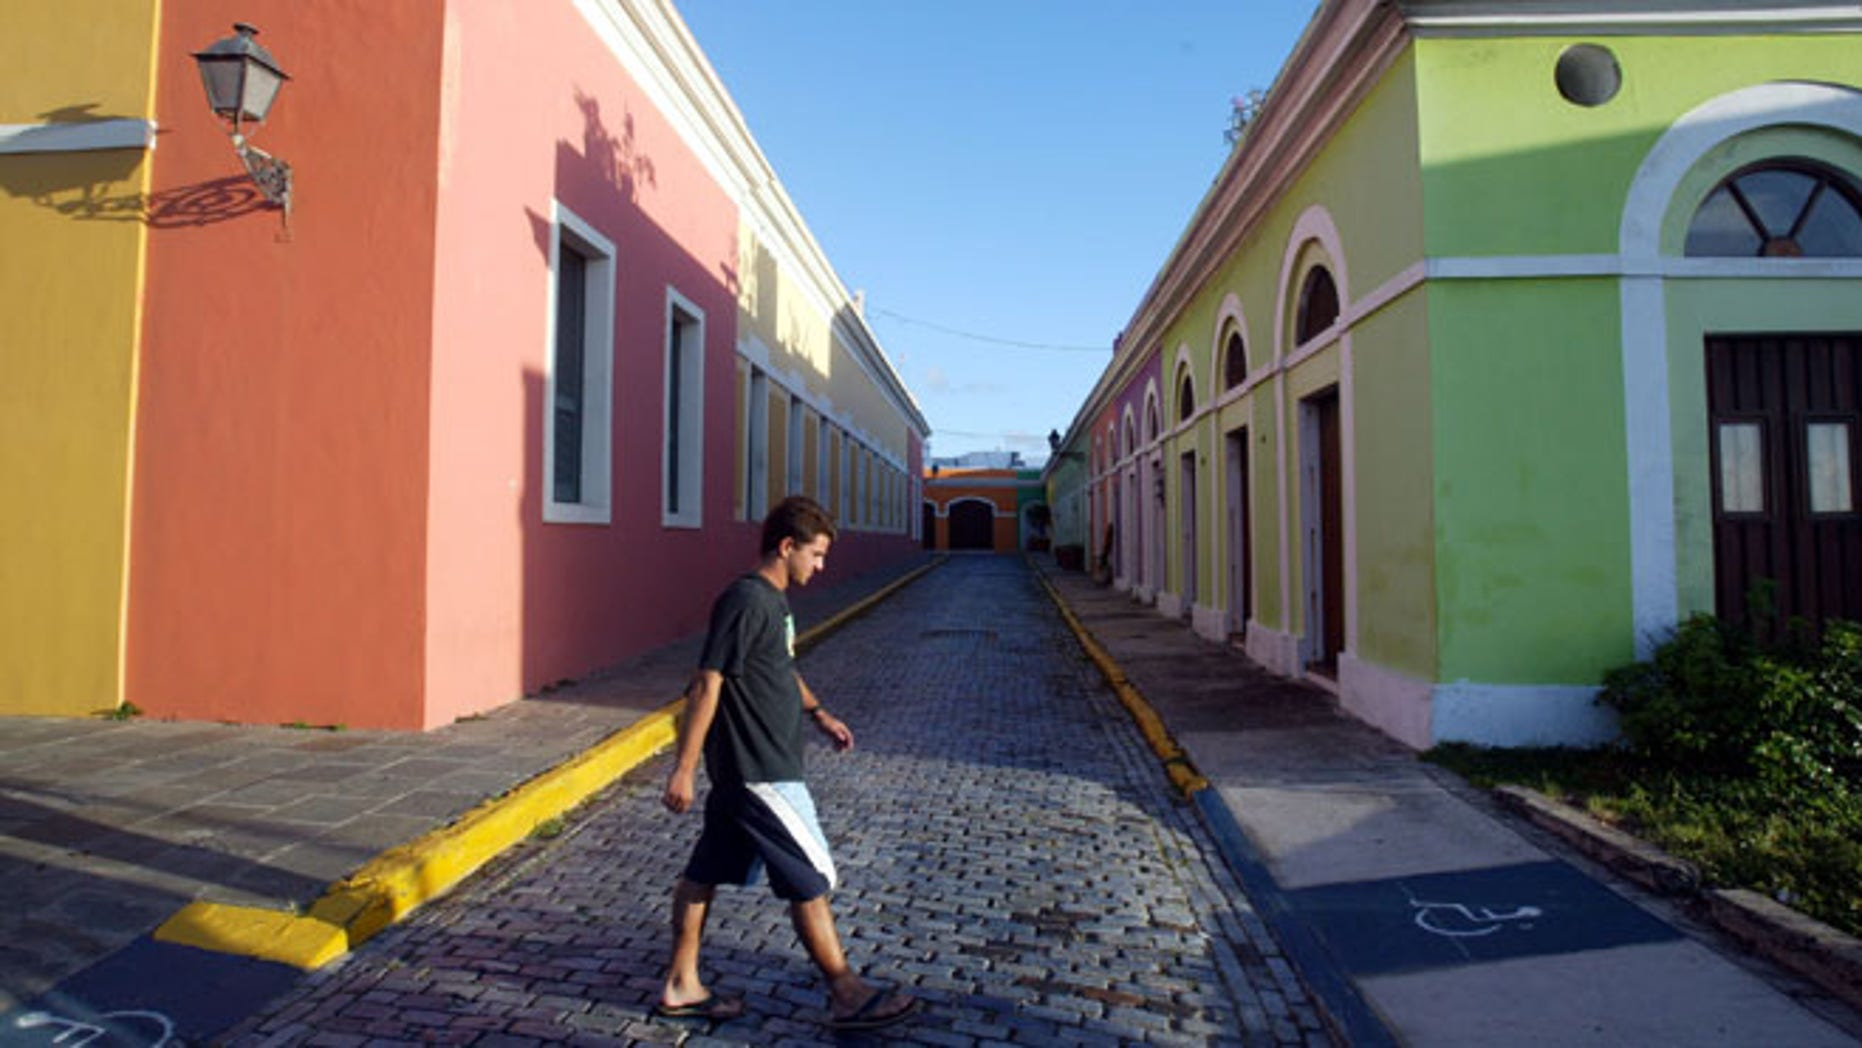 SAN JUAN, PUERTO RICO- APRIL 25: Colorful homes line the cobblestoned streets April 25, 2004 in Old San Juan, the original capital city of San Juan, Puerto Rico. The old city is a historic district of seven square blocks made up of ancient buildings and colonial homes, massive stone walls and vast fortifications, sunny parks and cobblestoned streets.  (Photo by Joe Raedle/Getty Images)